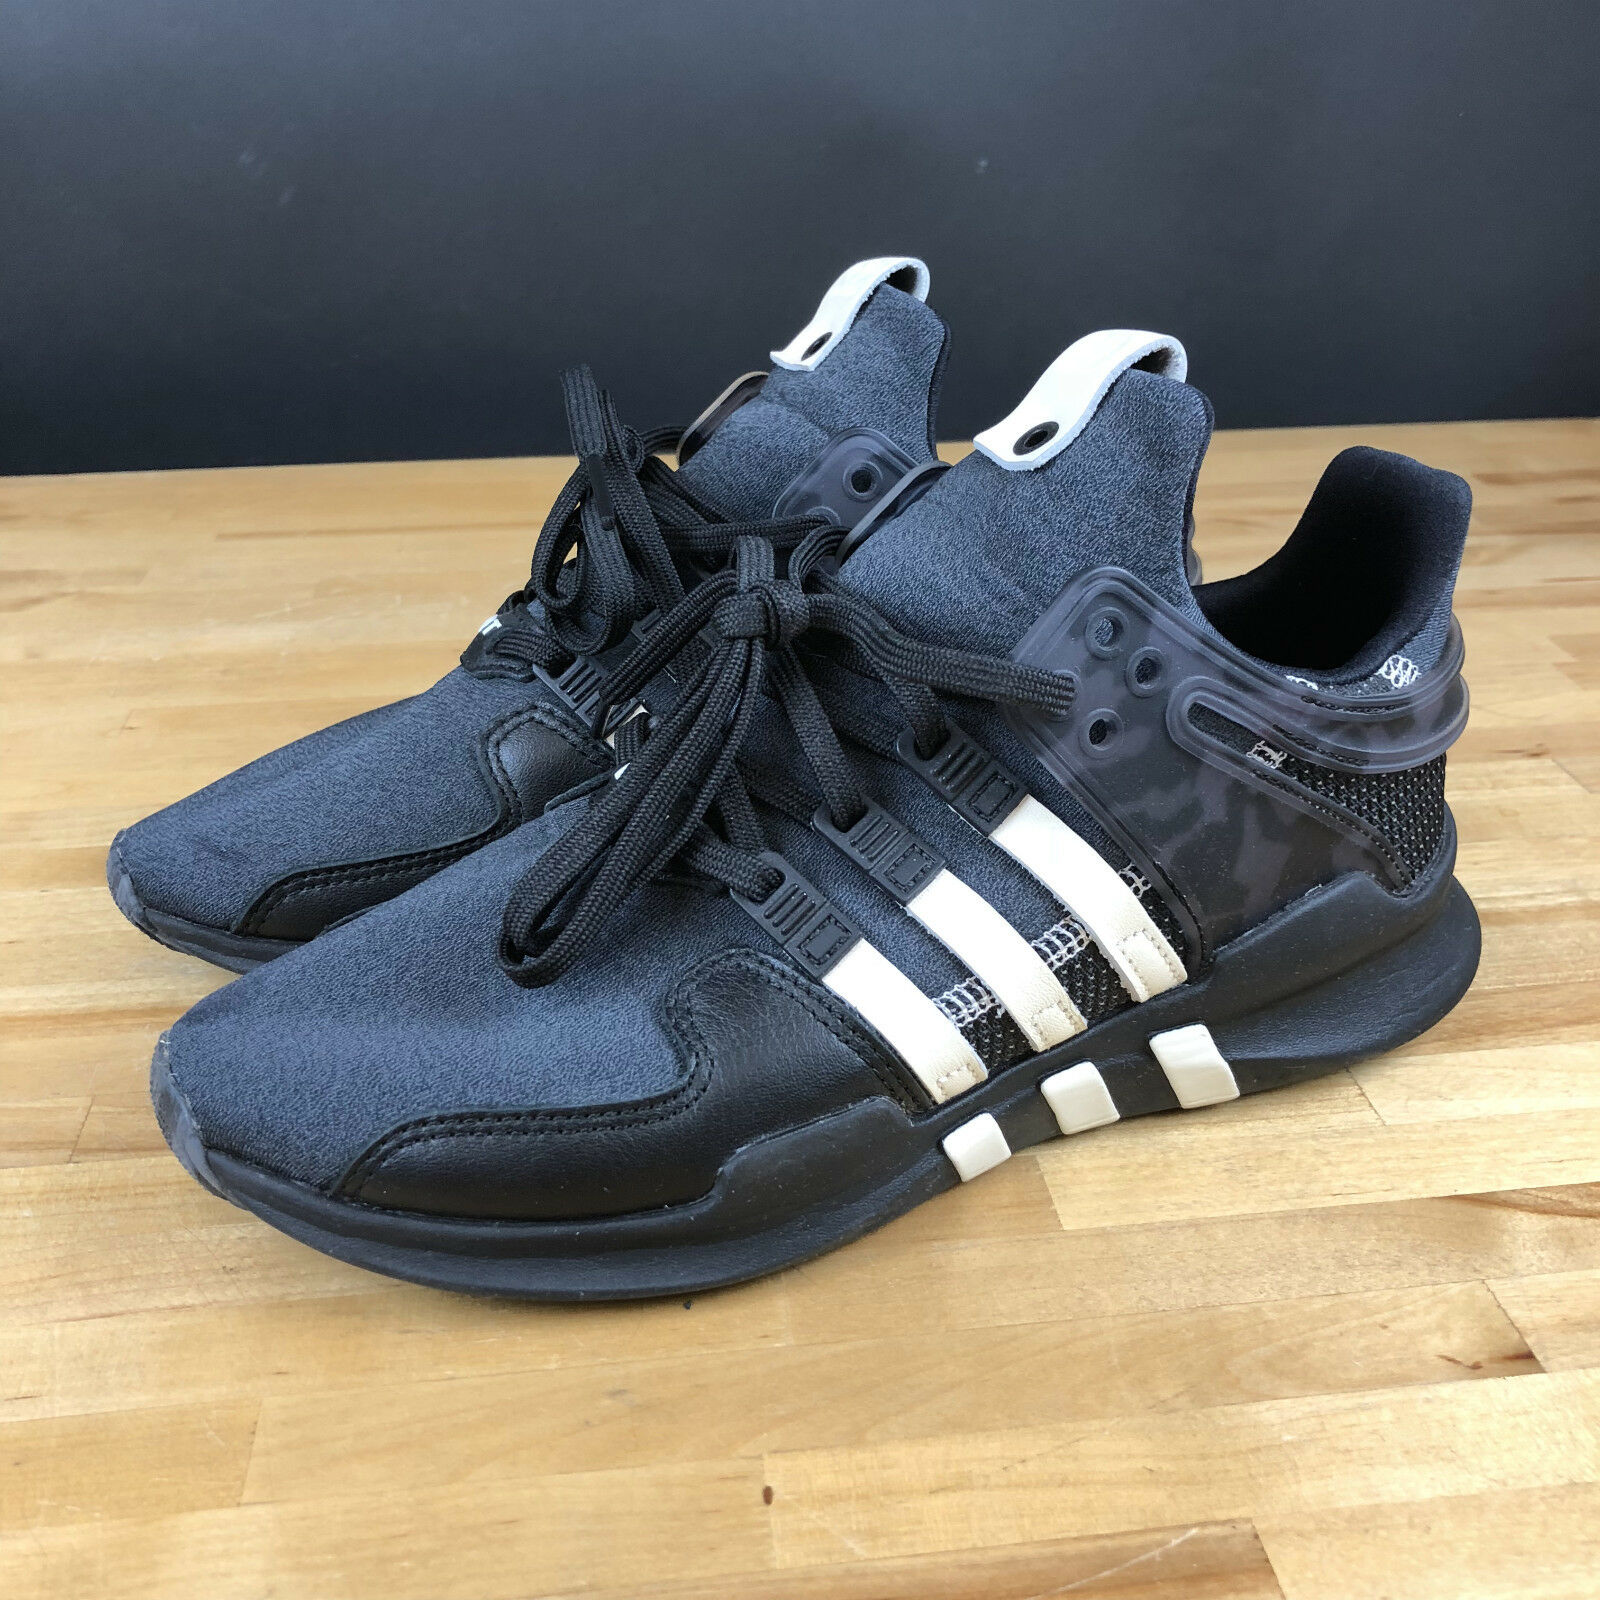 Undefeated x EQT Adidas EQT x Support ADV BY2598 RARE Size US 6 MINT CONDITION 07d639